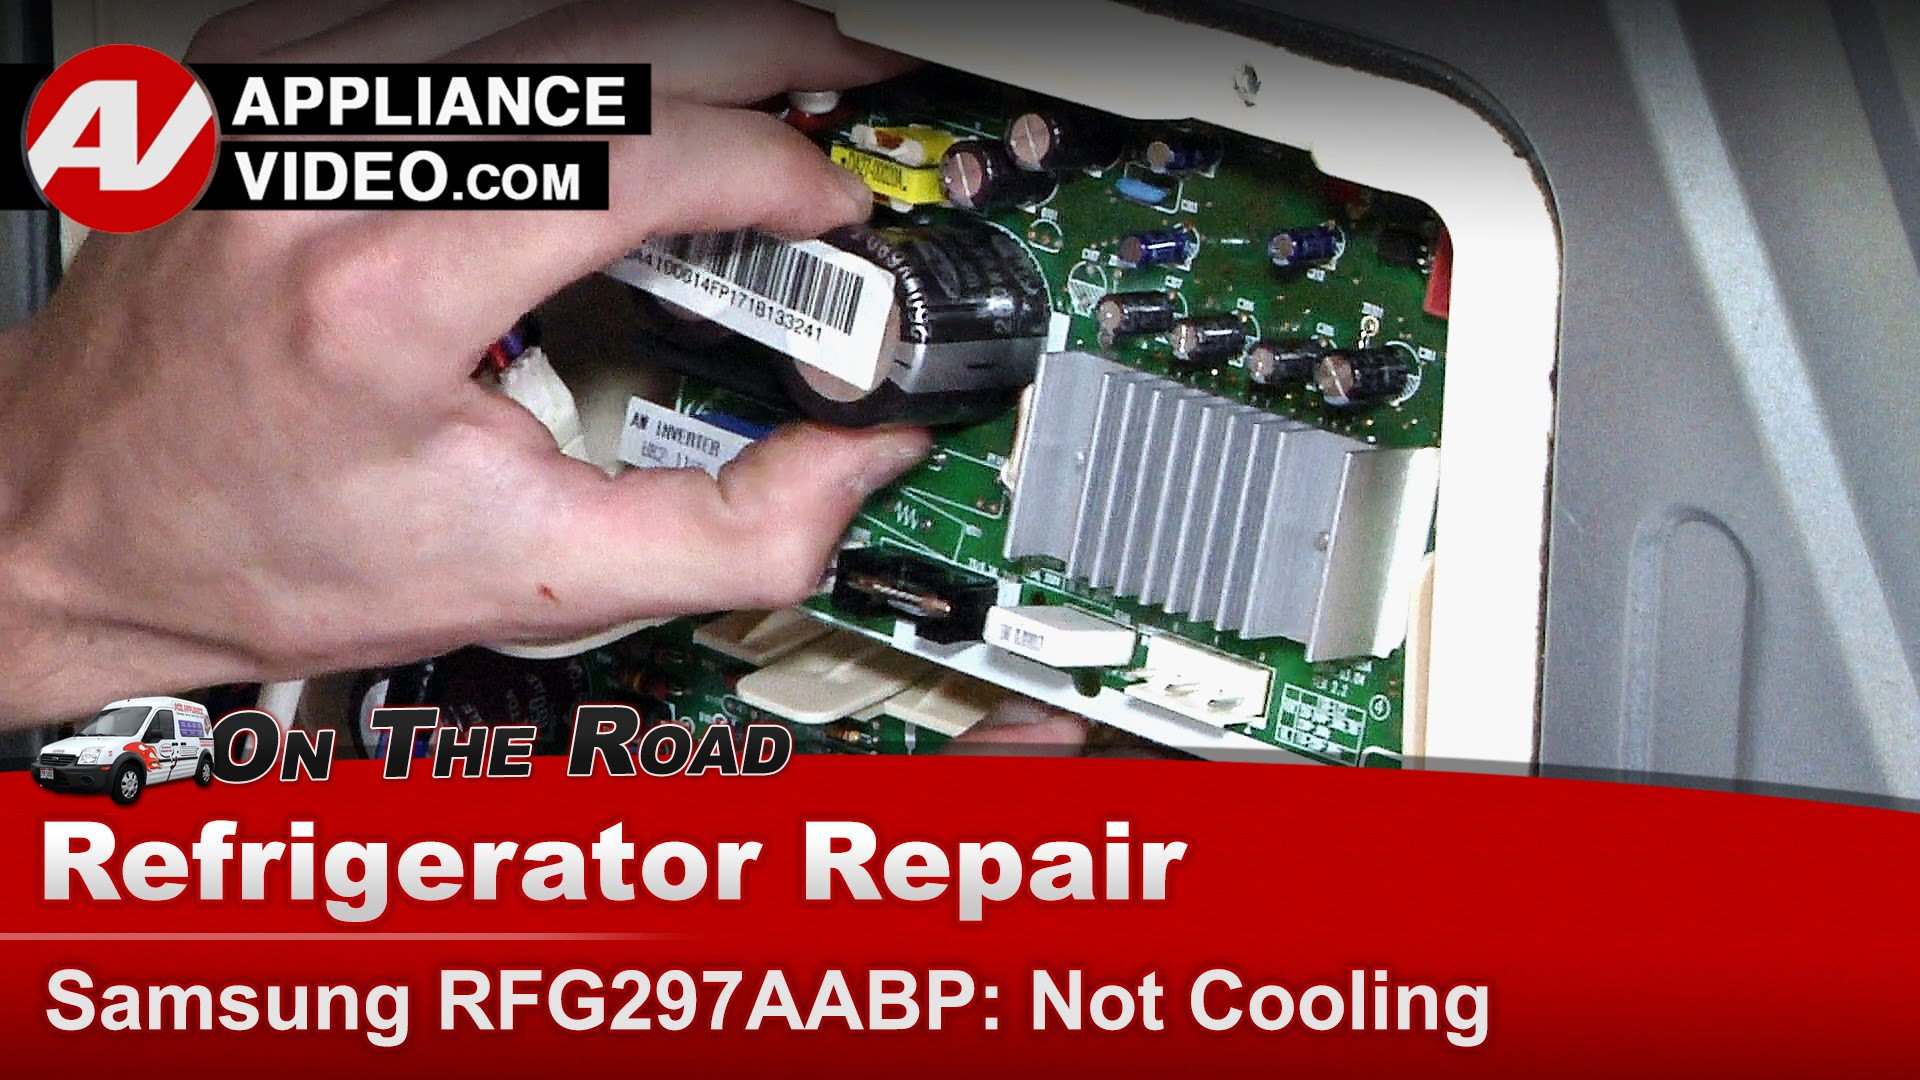 Samsung Rfg297aabp Refrigerator Not Cooling